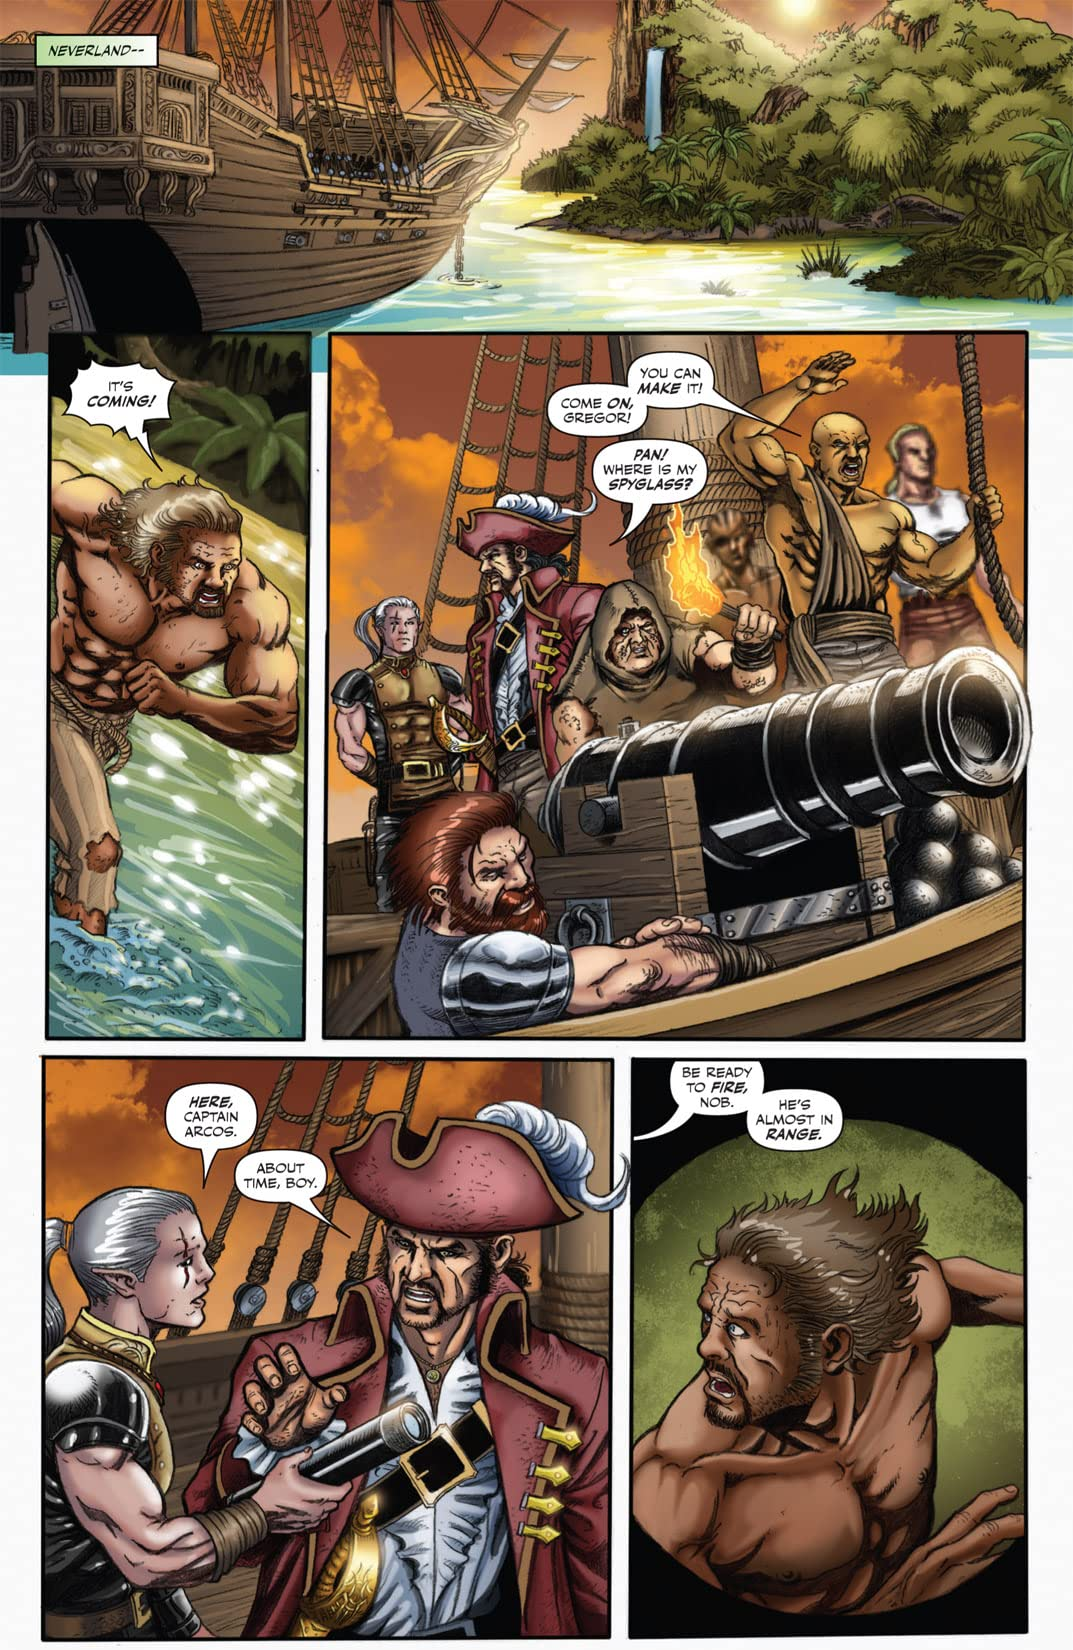 Tales From Neverland #3 (of 3)